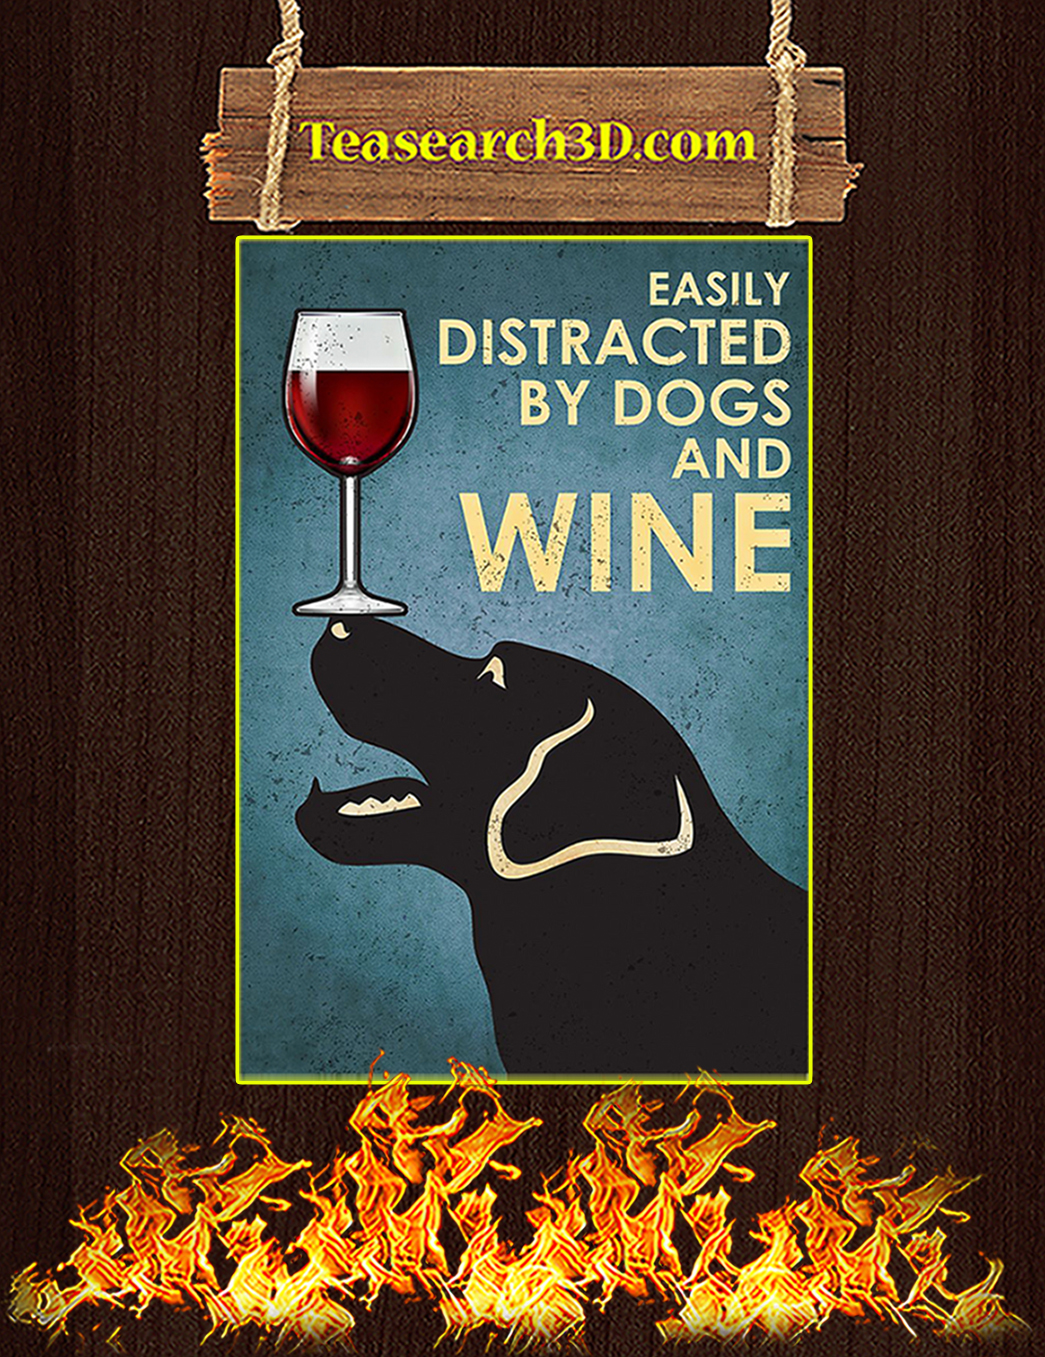 Easily distracted by dogs and wine poster A1